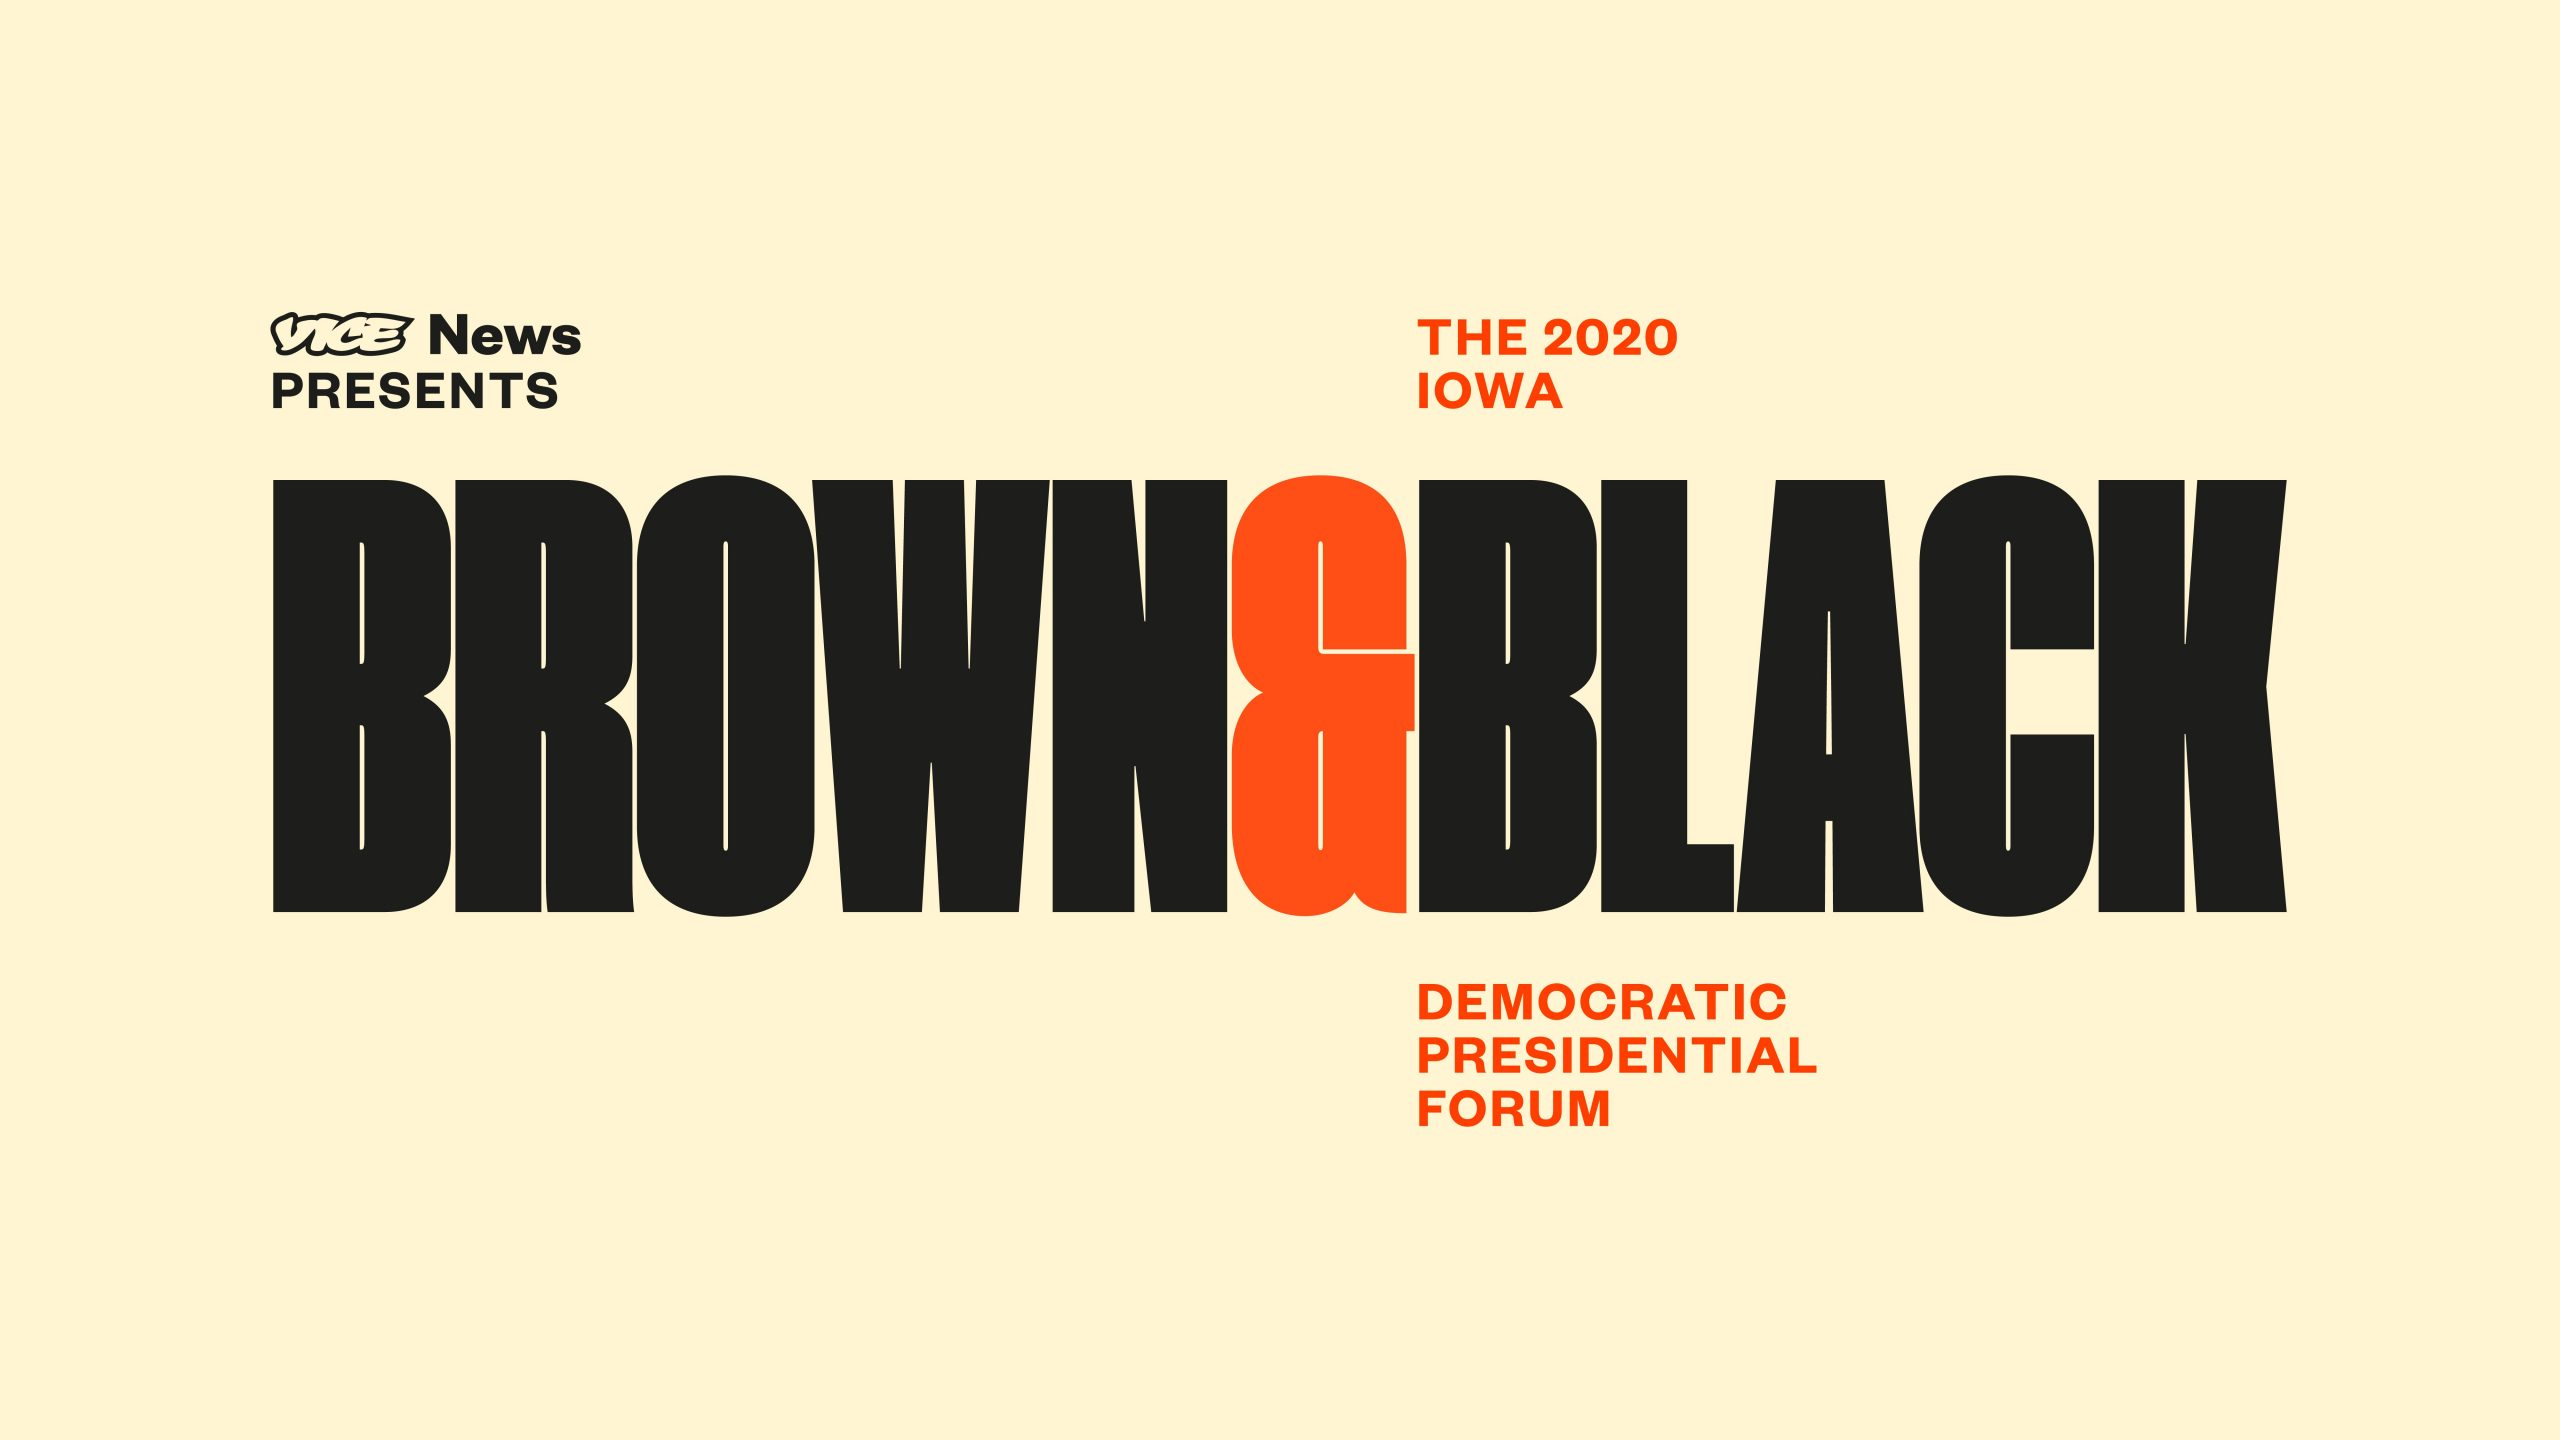 , VICE News to Broadcast the 2020 Brown & Black Democratic Presidential Forum Jan. 20, Saubio Making Wealth